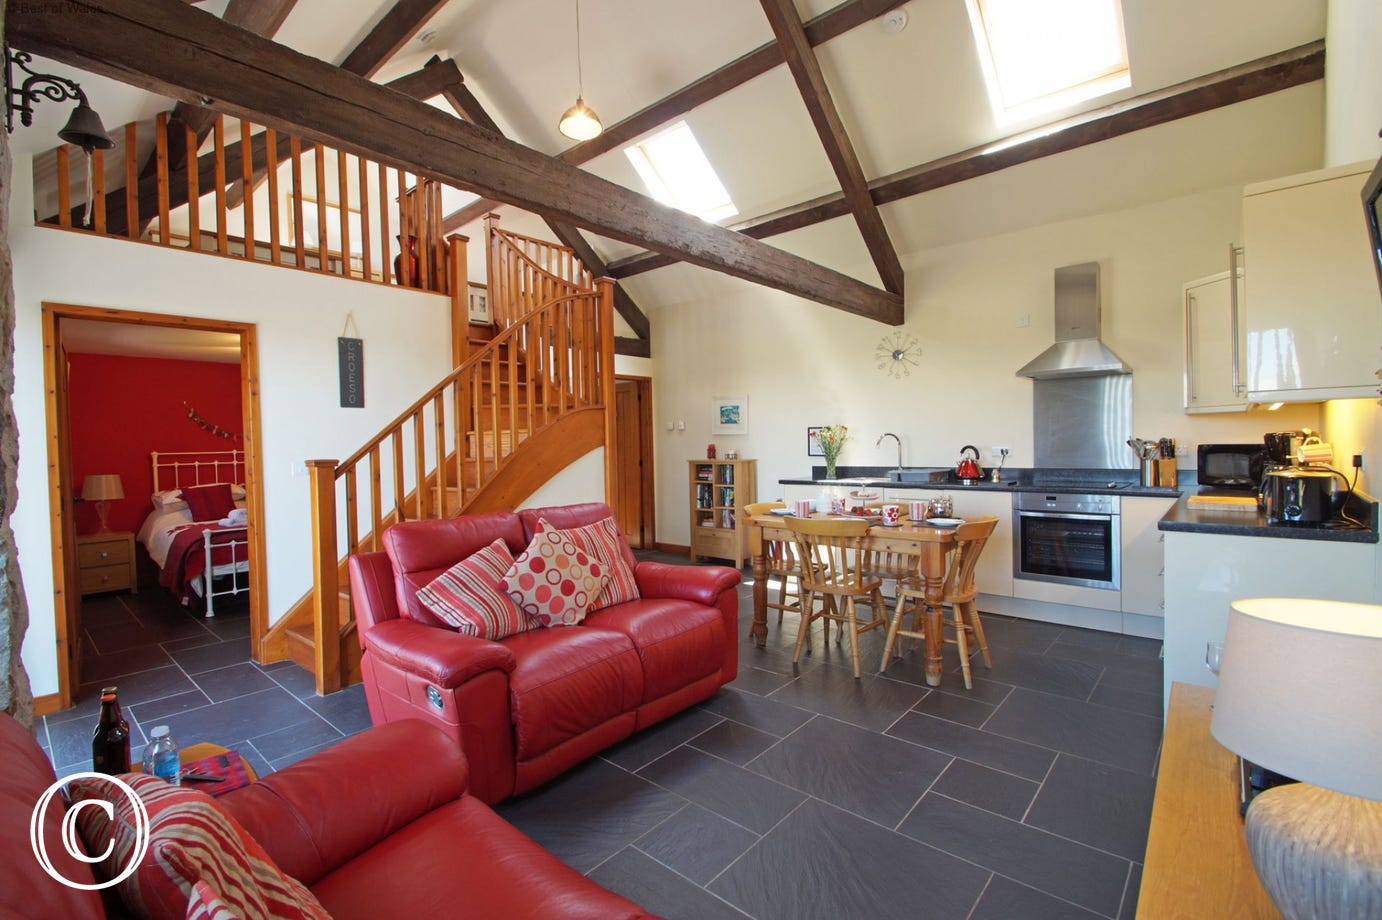 Open plan living area - spacious double height room with beams